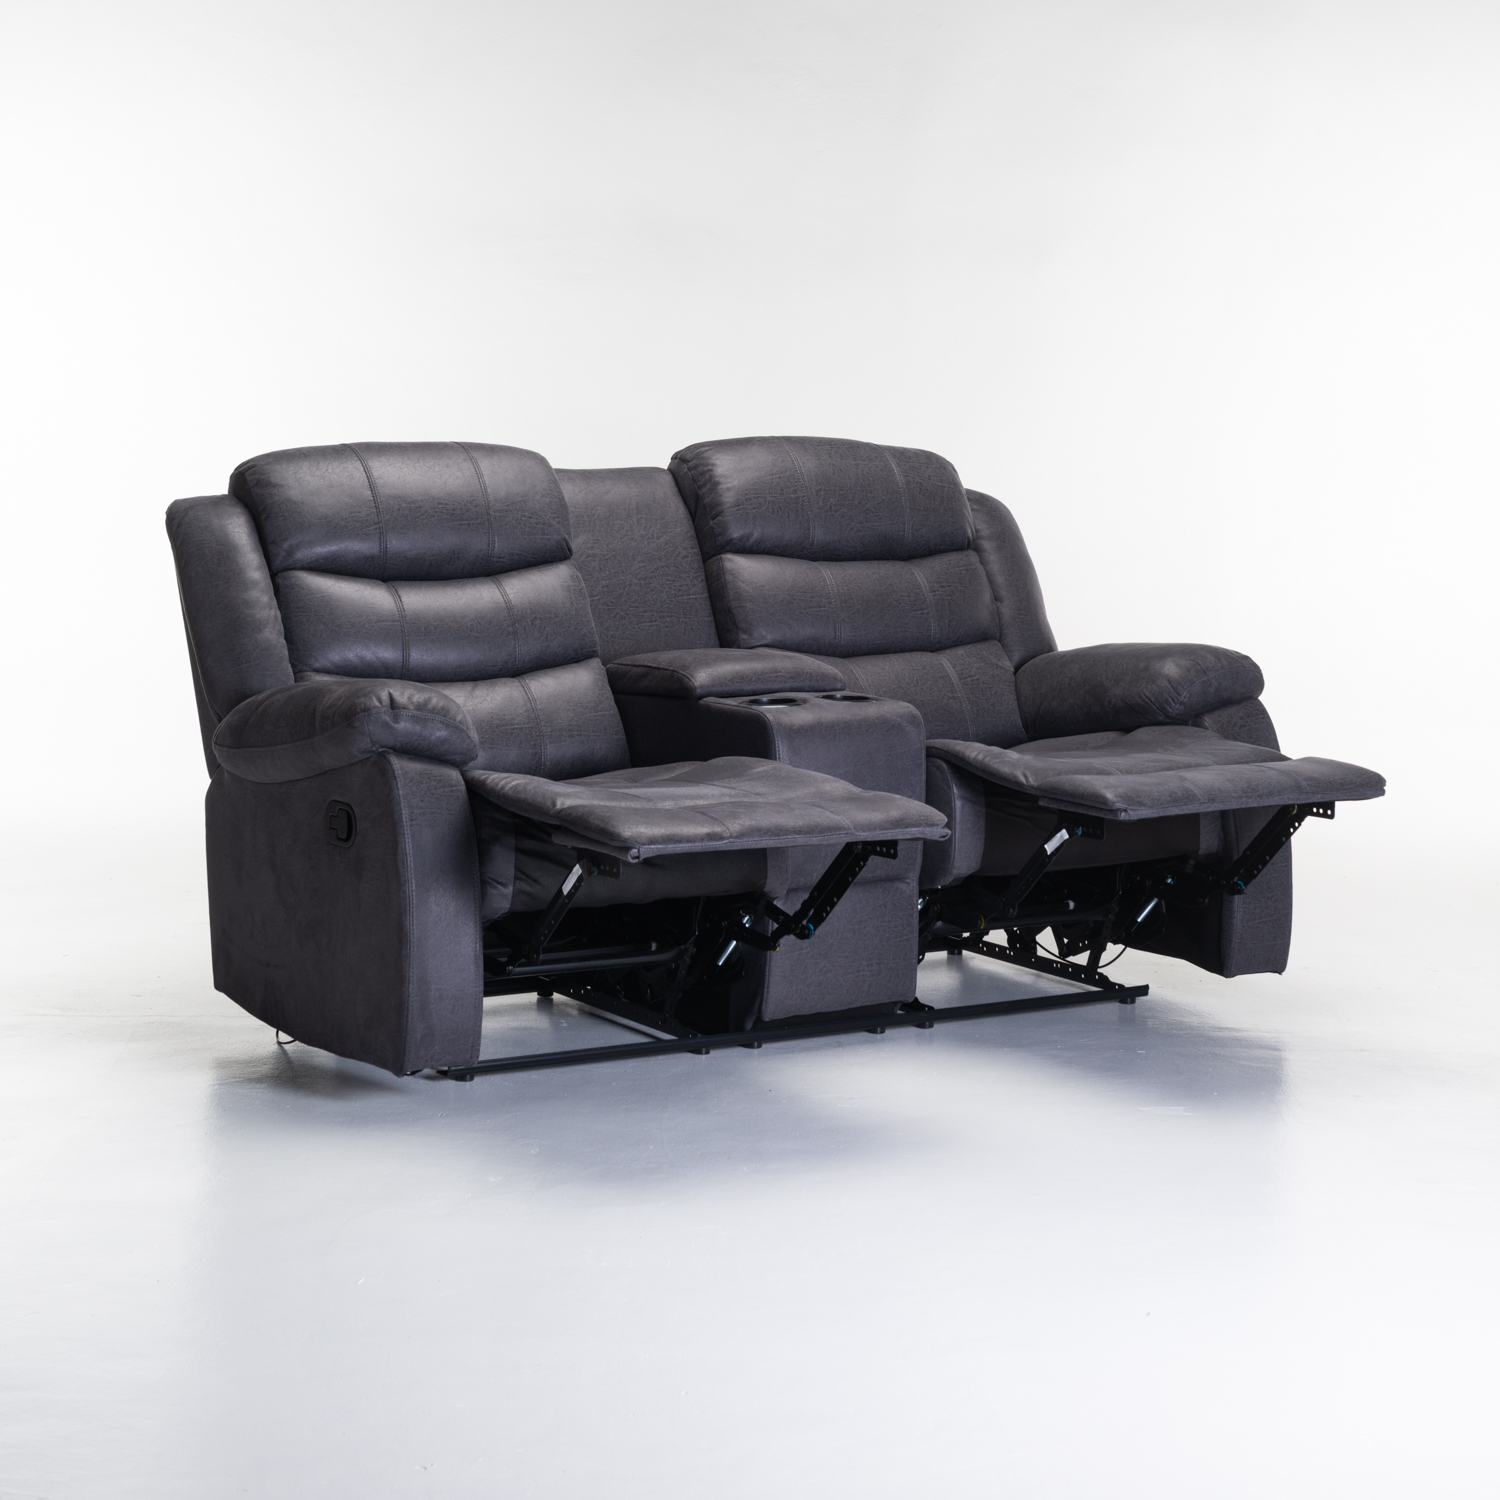 Yuzi Luxury Fabric 2 Seater with Console Recliner